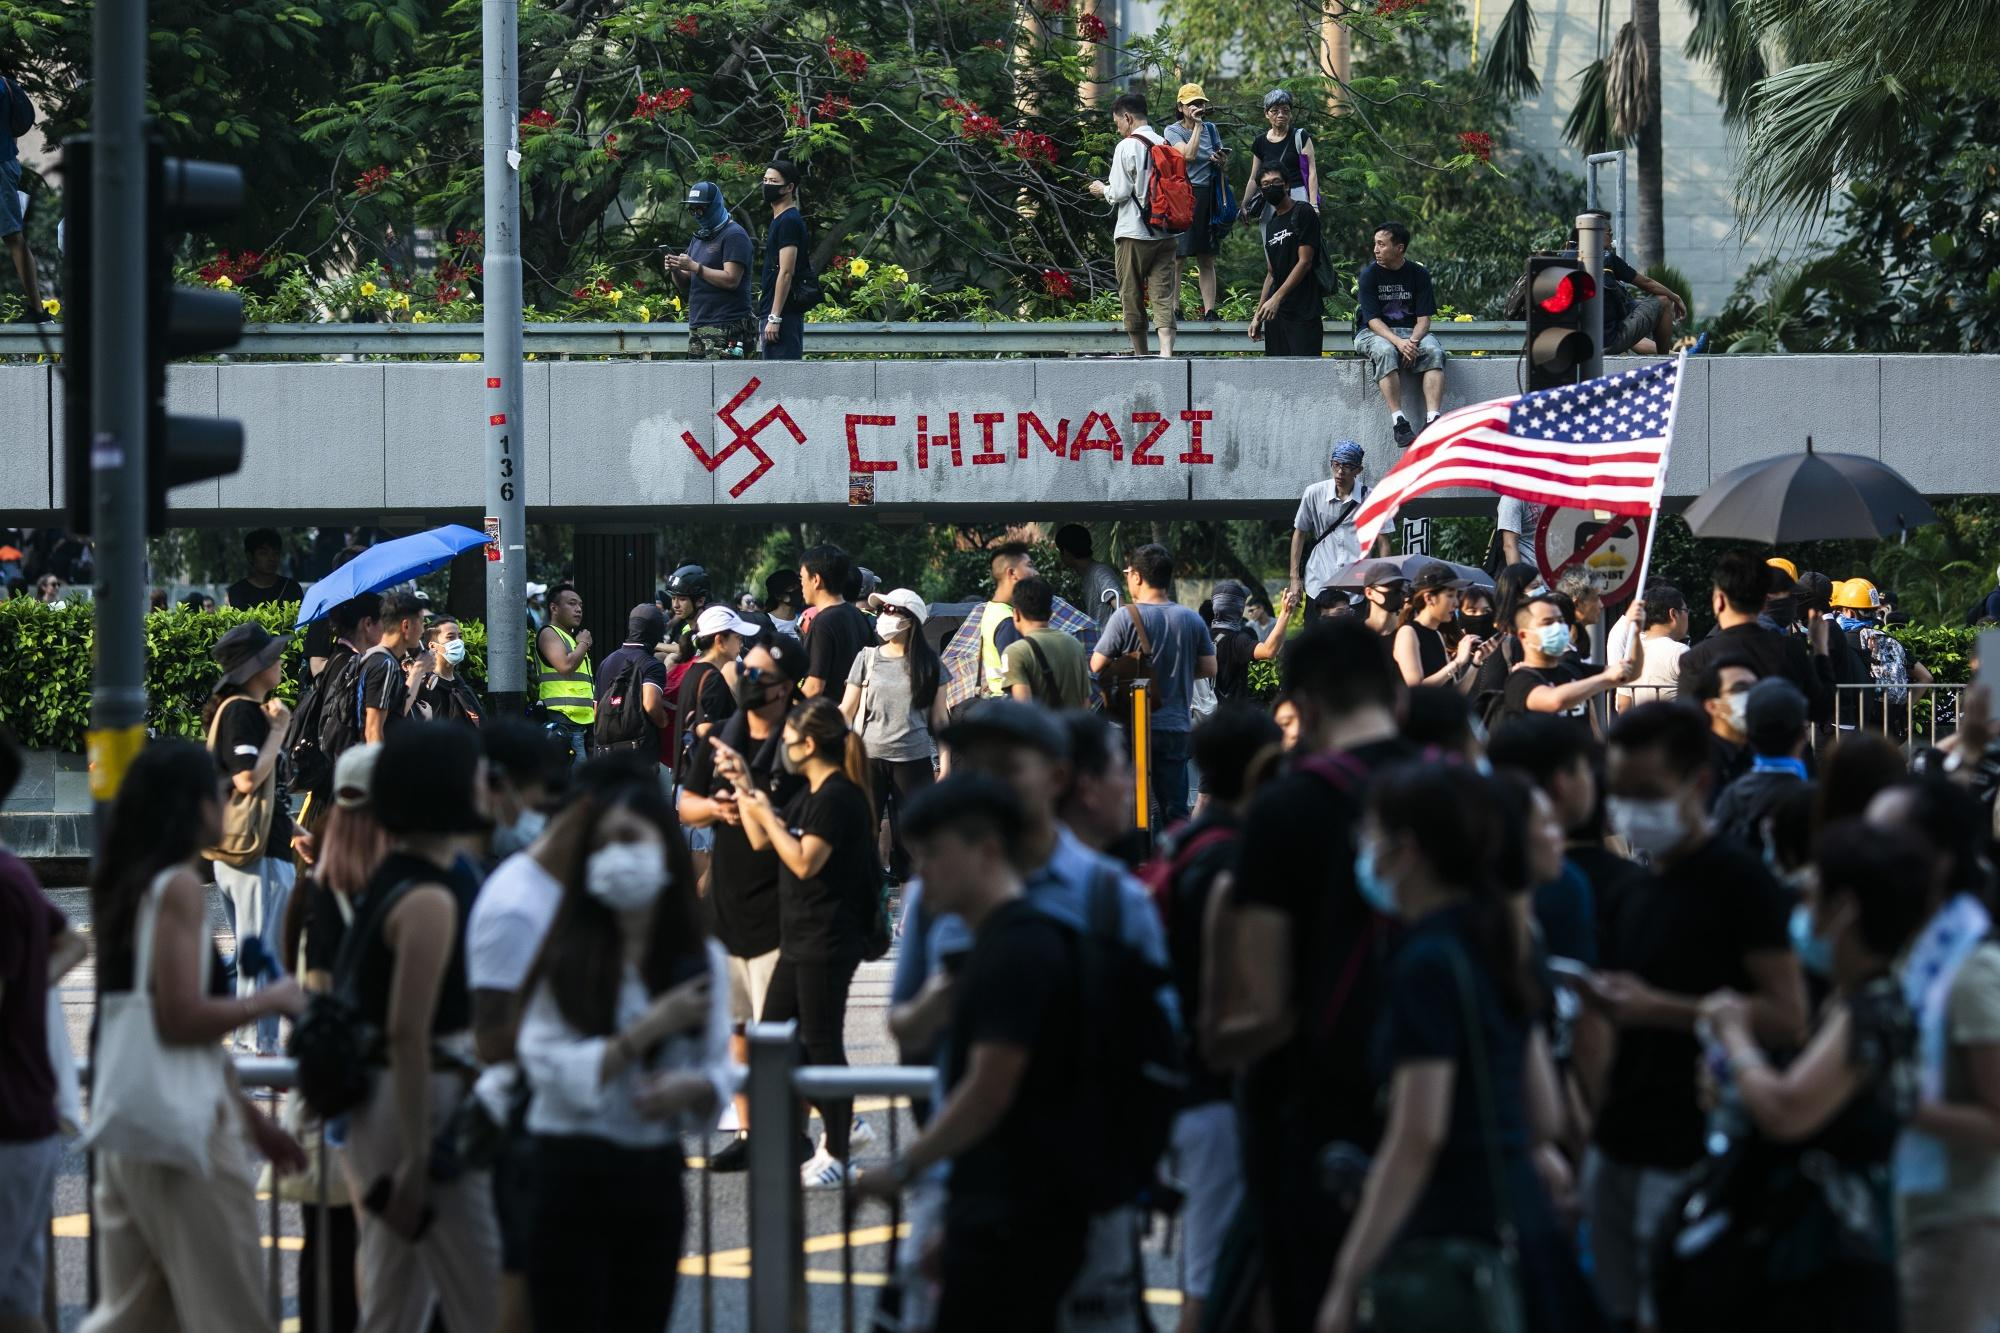 Suspect whose case led to Hong Kong unrest leaves prison